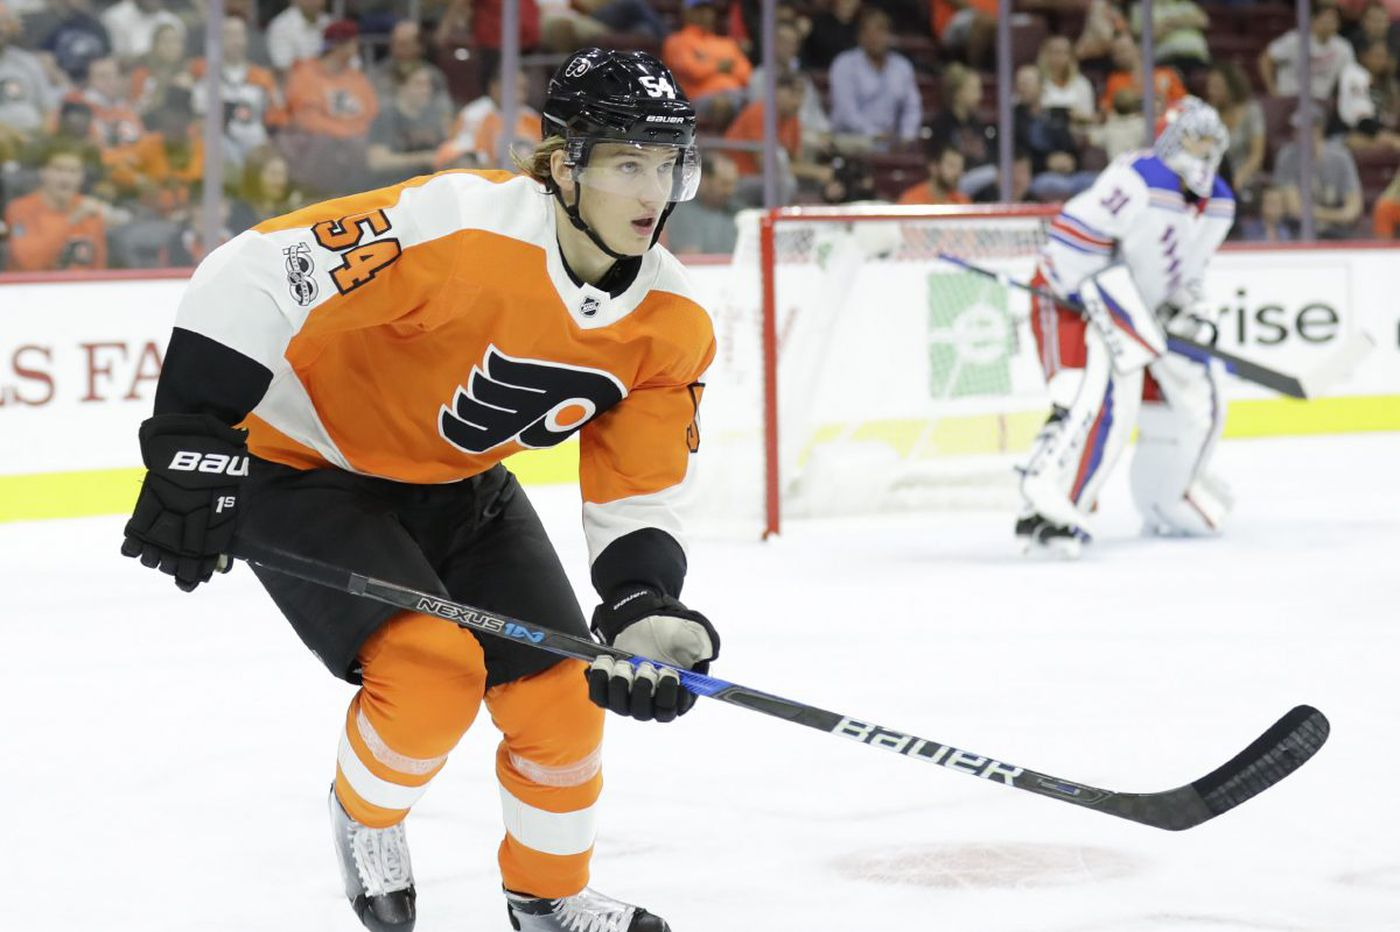 With Wayne Simmonds sidelined, Oskar Lindblom given his first chance with Flyers